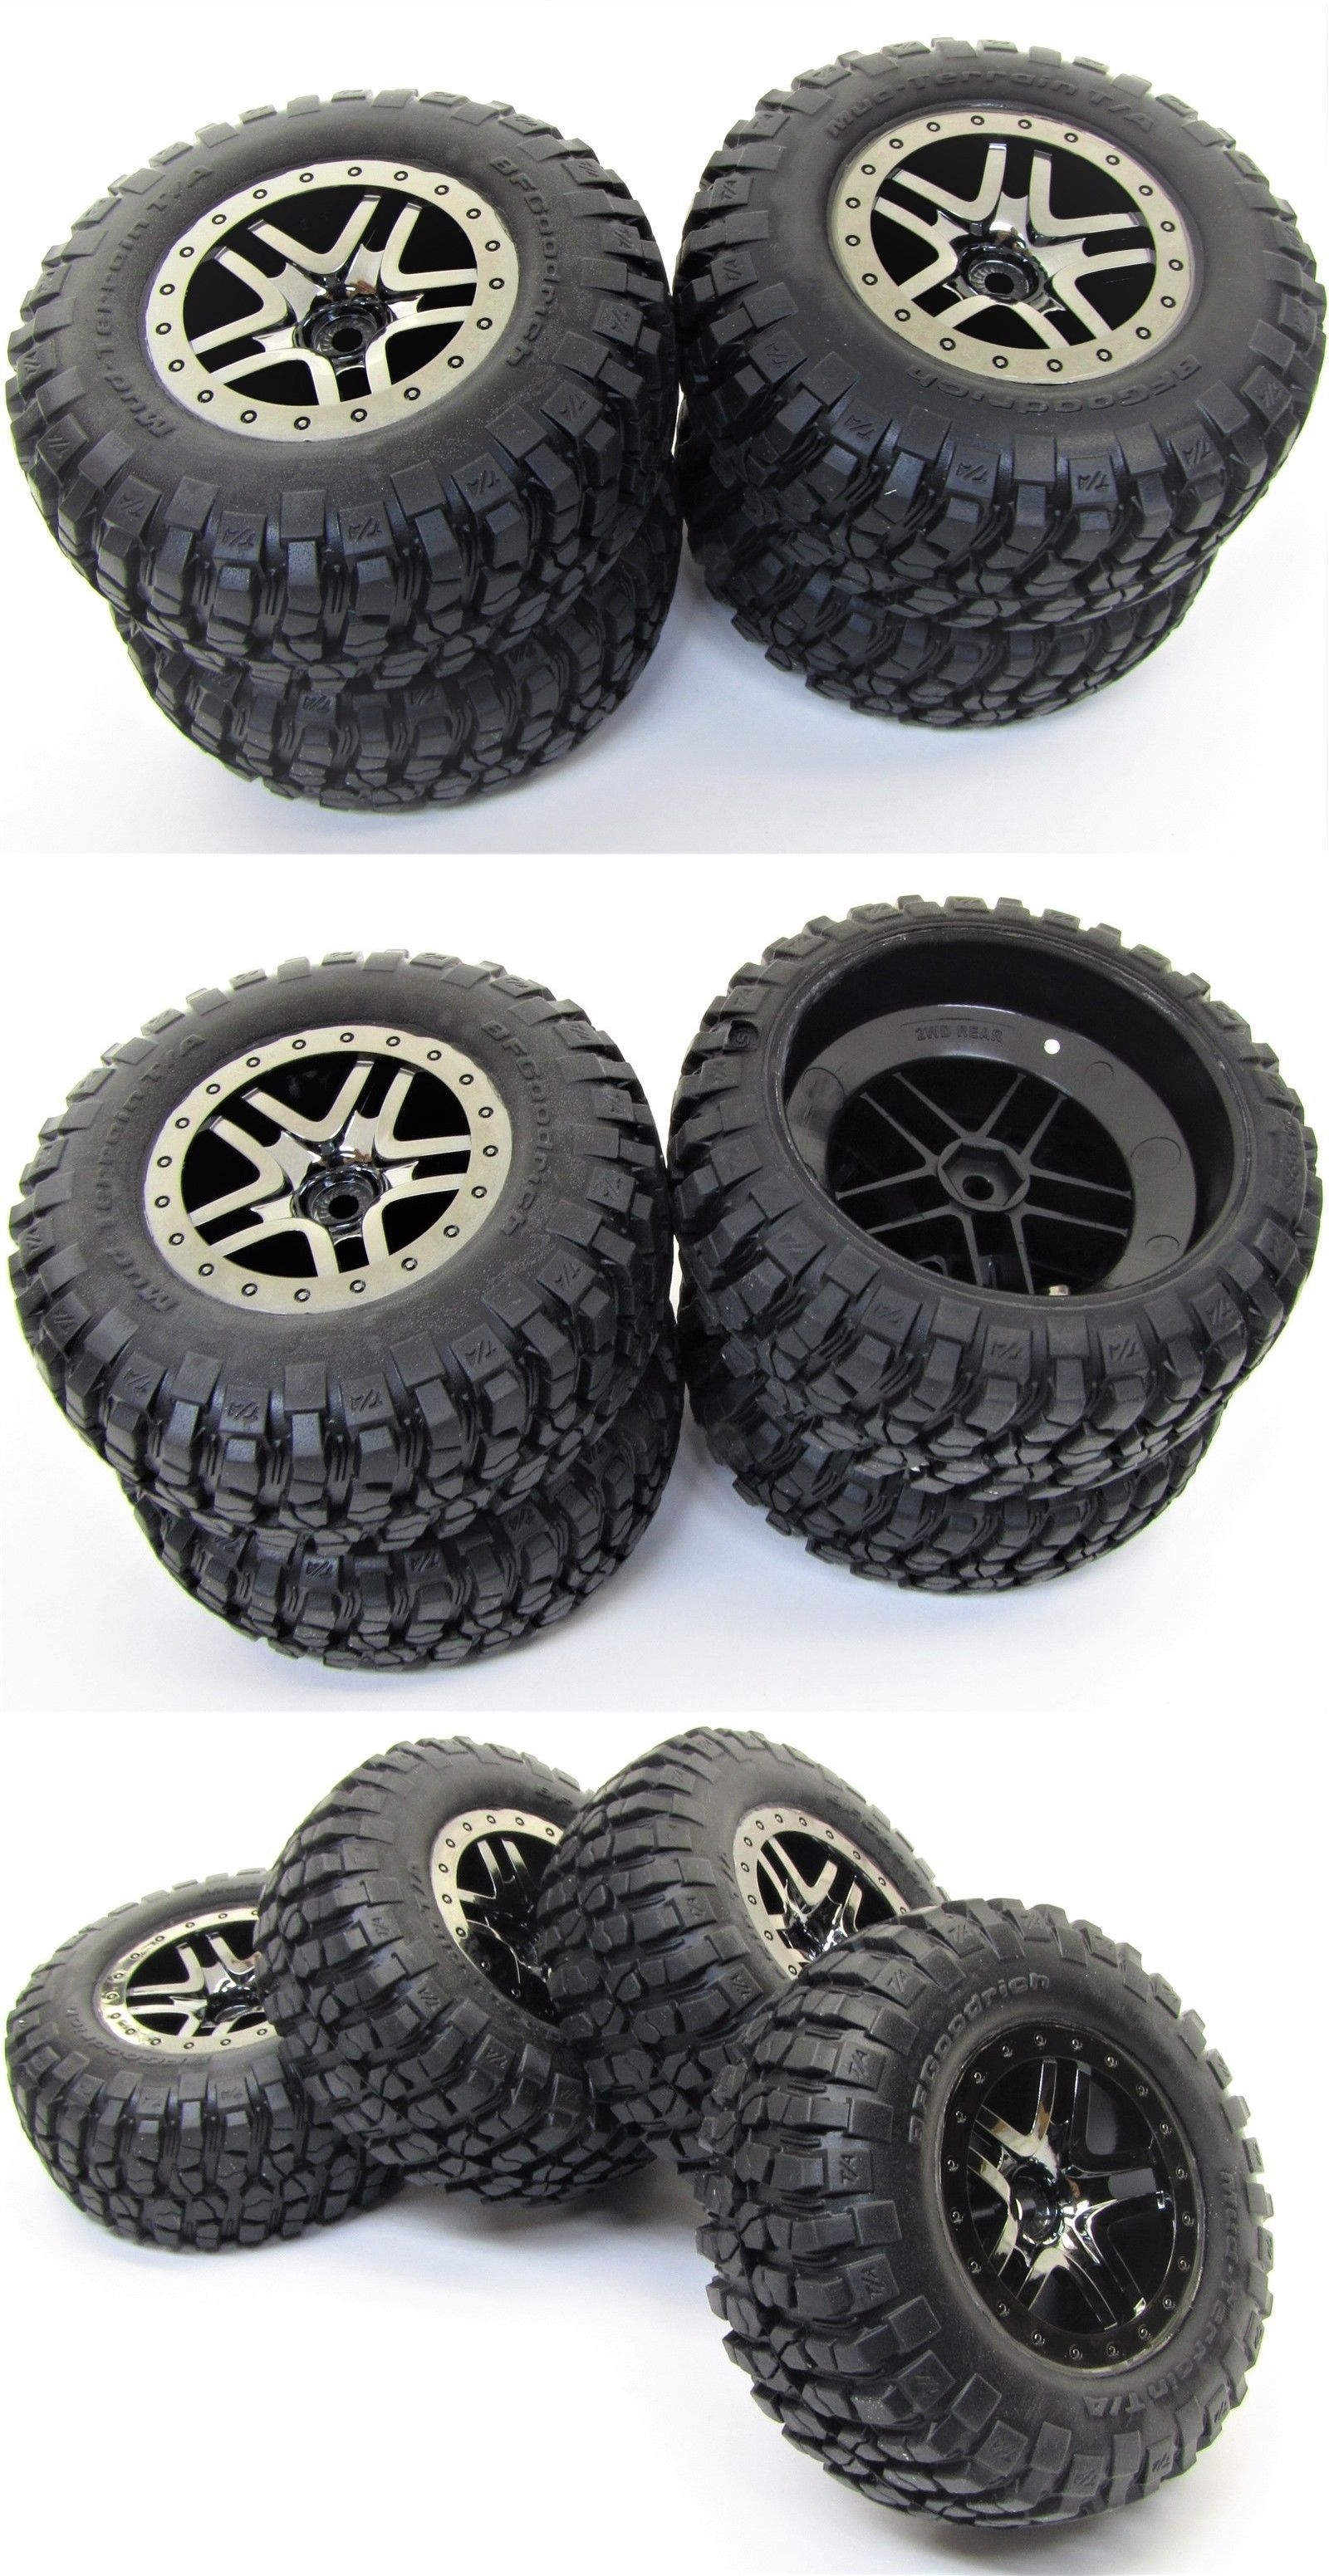 Body Parts and Interior 182203: Slash 4X4 Ultimate Tires